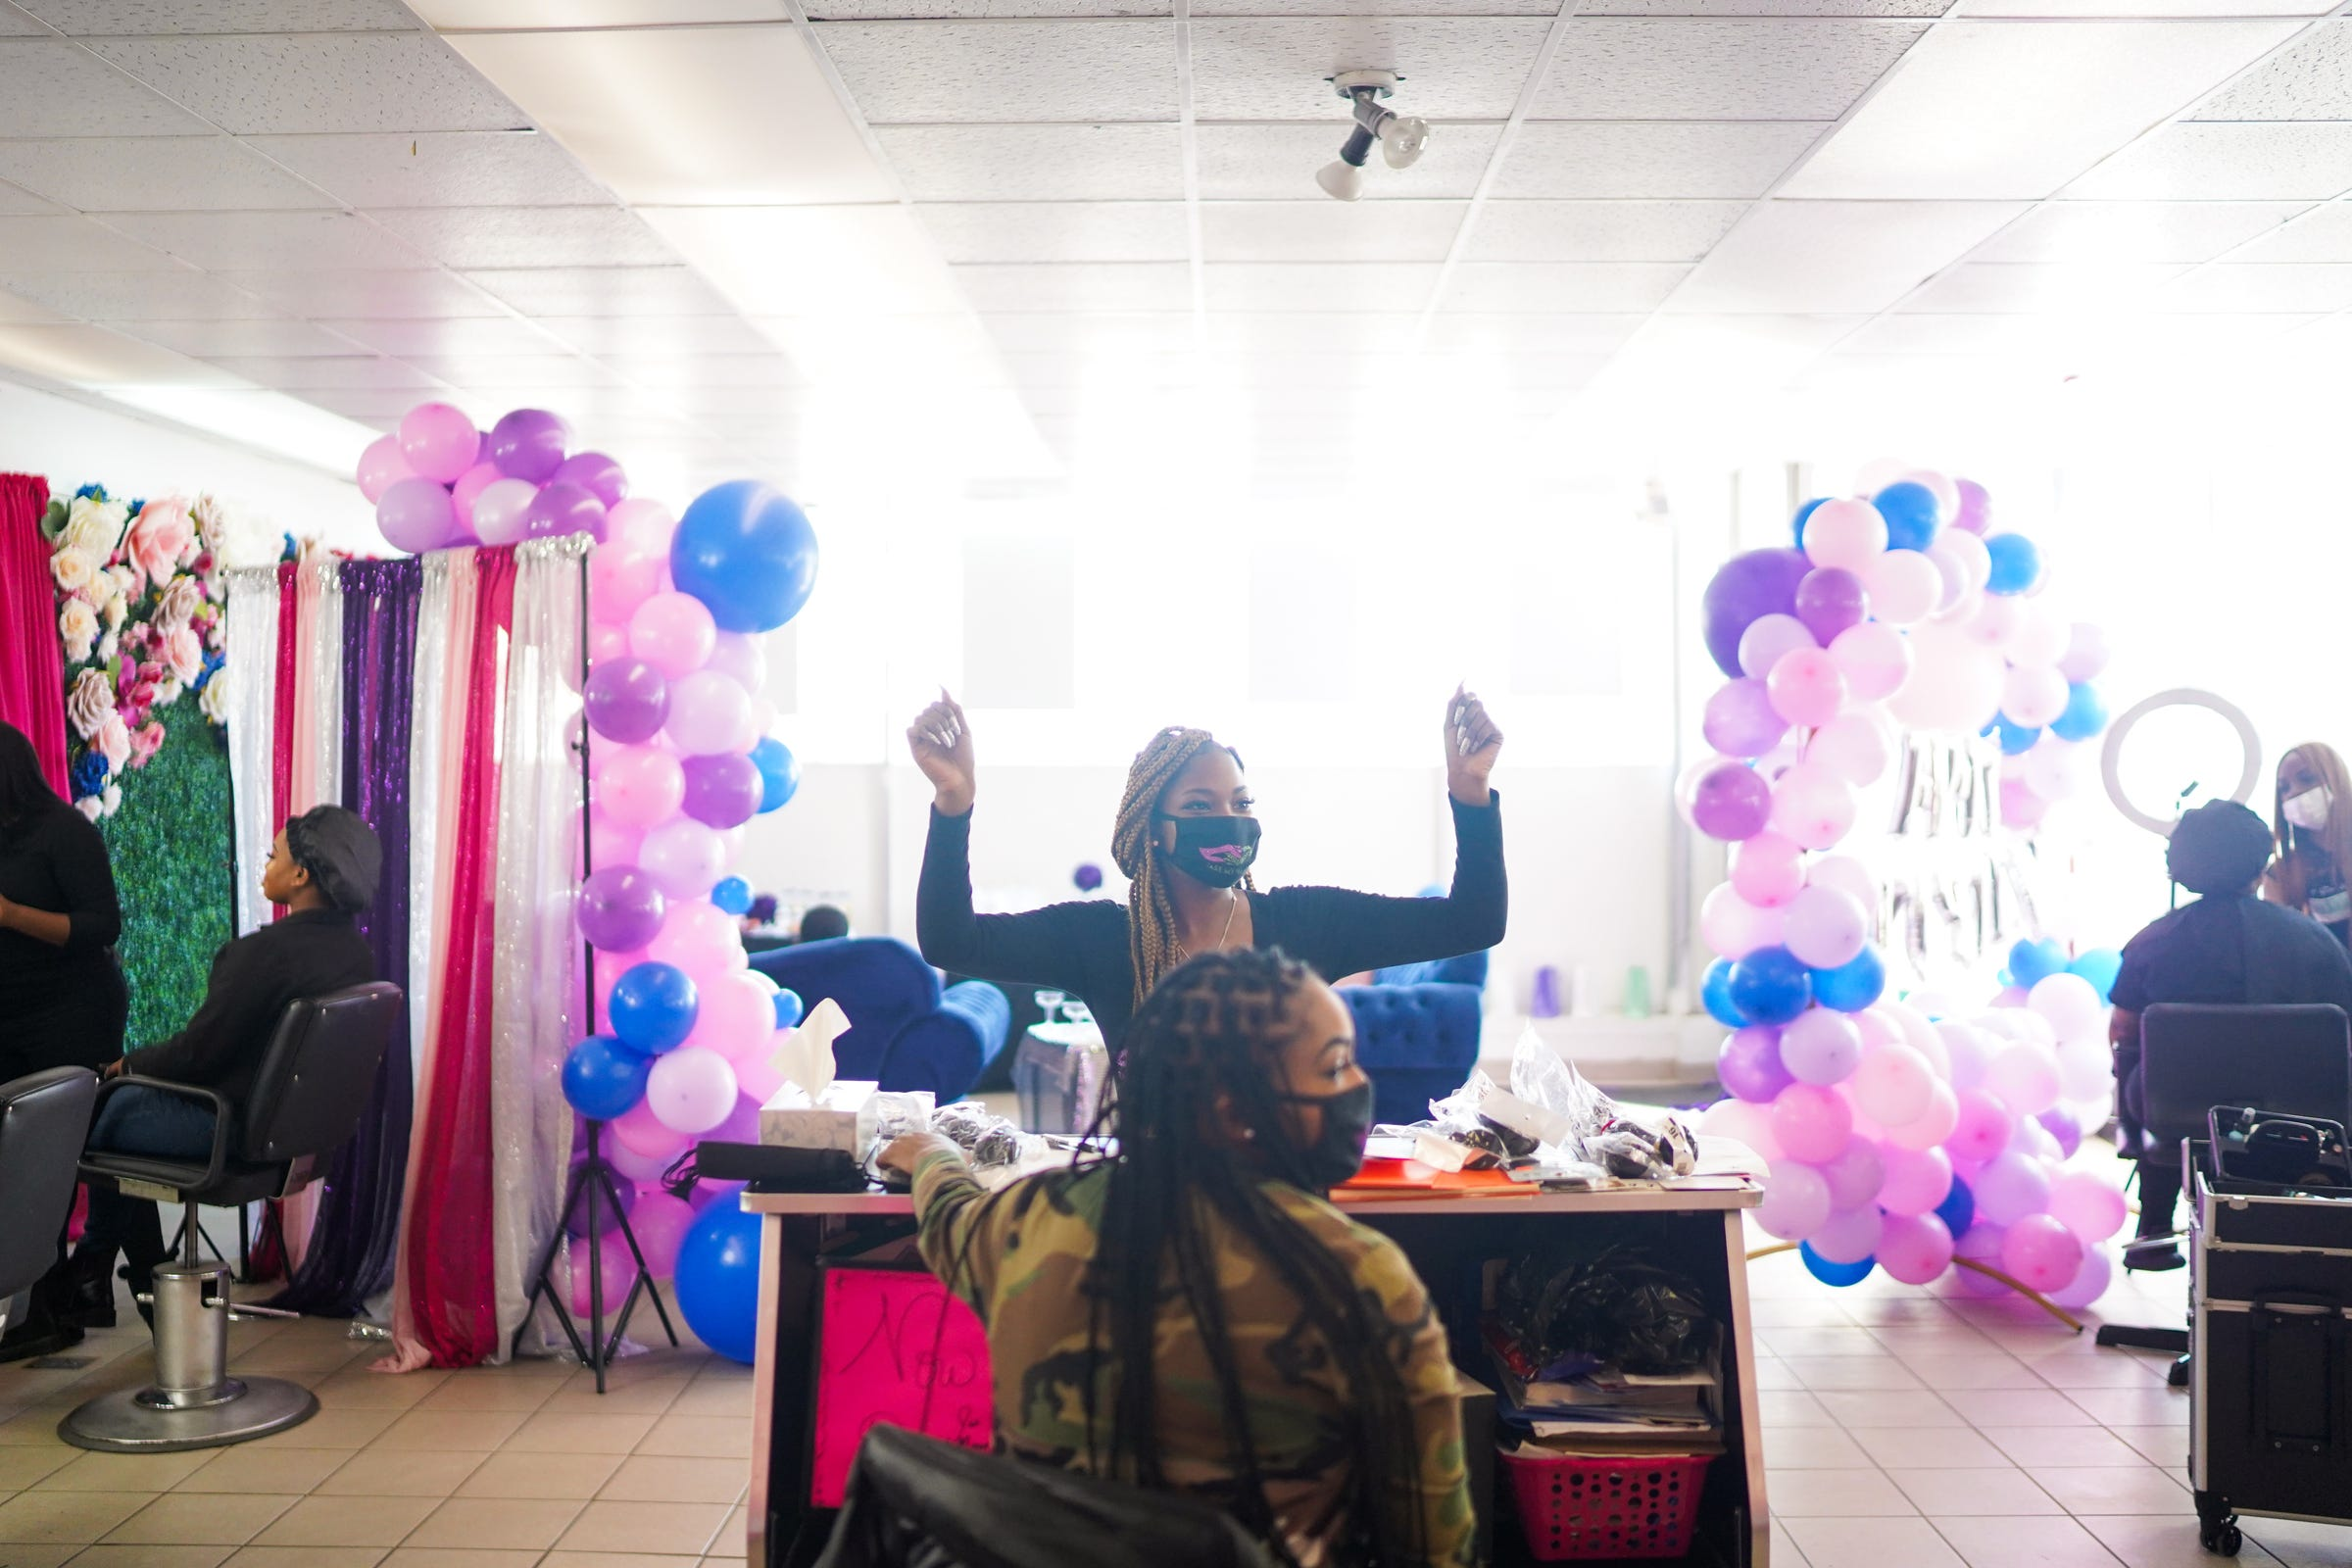 """Tia Russell throws her hands up as the music comes back on during the fourth annual Self-Awareness Appreciation Day put on by the non-profit, Take My Hand at the ShayBaby Make Up Bar on Sunday, March 21, 2021 in Warren. Take My Hand has been steadily growing the event each year. """"The first year we had four people. That's it,"""" she said. The event brought together 11 volunteer hairdressers, make-up artists, nail techs and a barber to serve 20 people."""